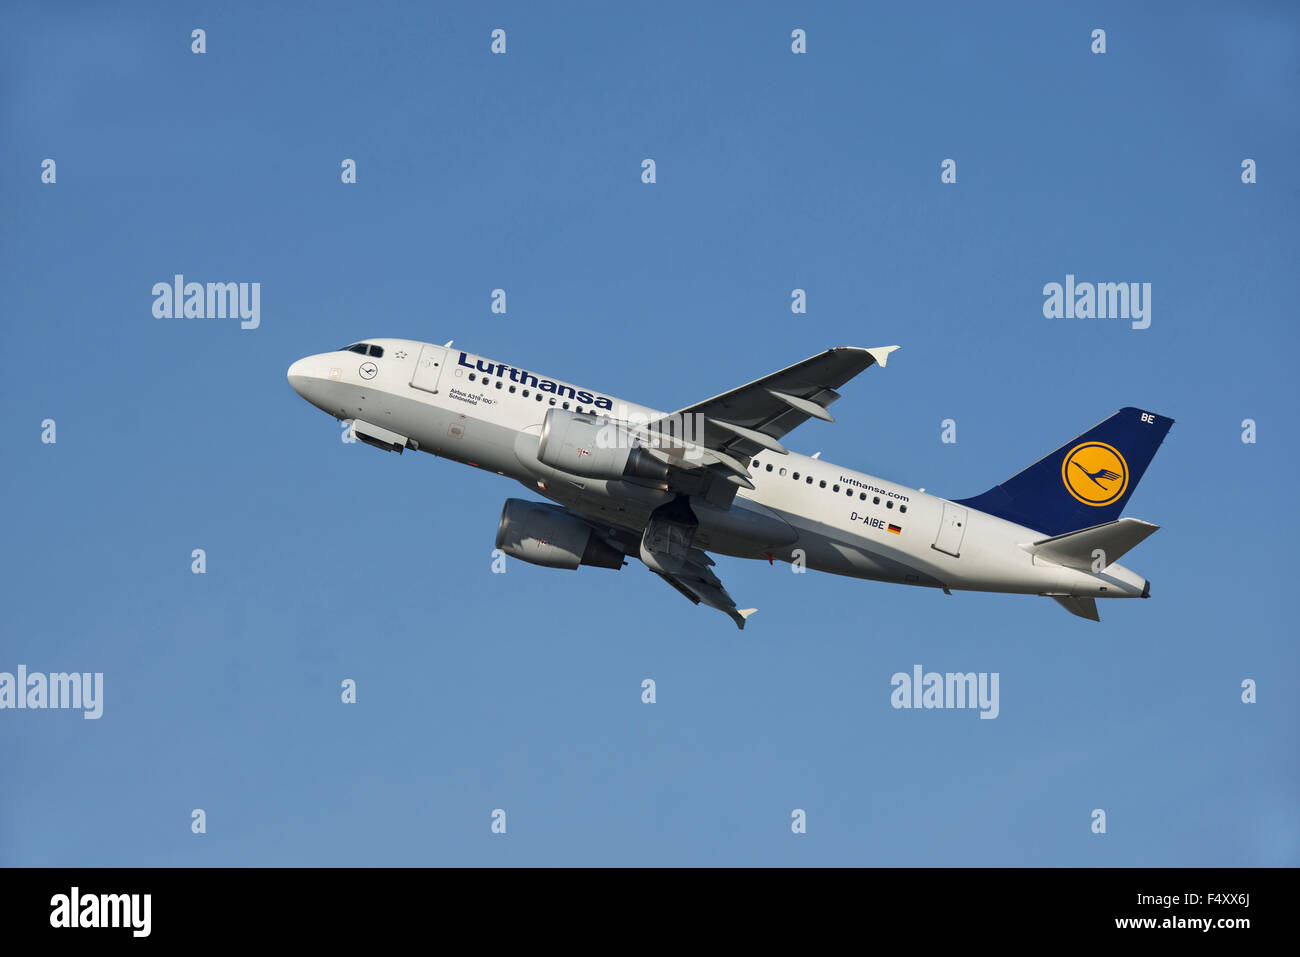 Lufthansa Airbus A319-100, climbing, D-AIBE - Stock Image